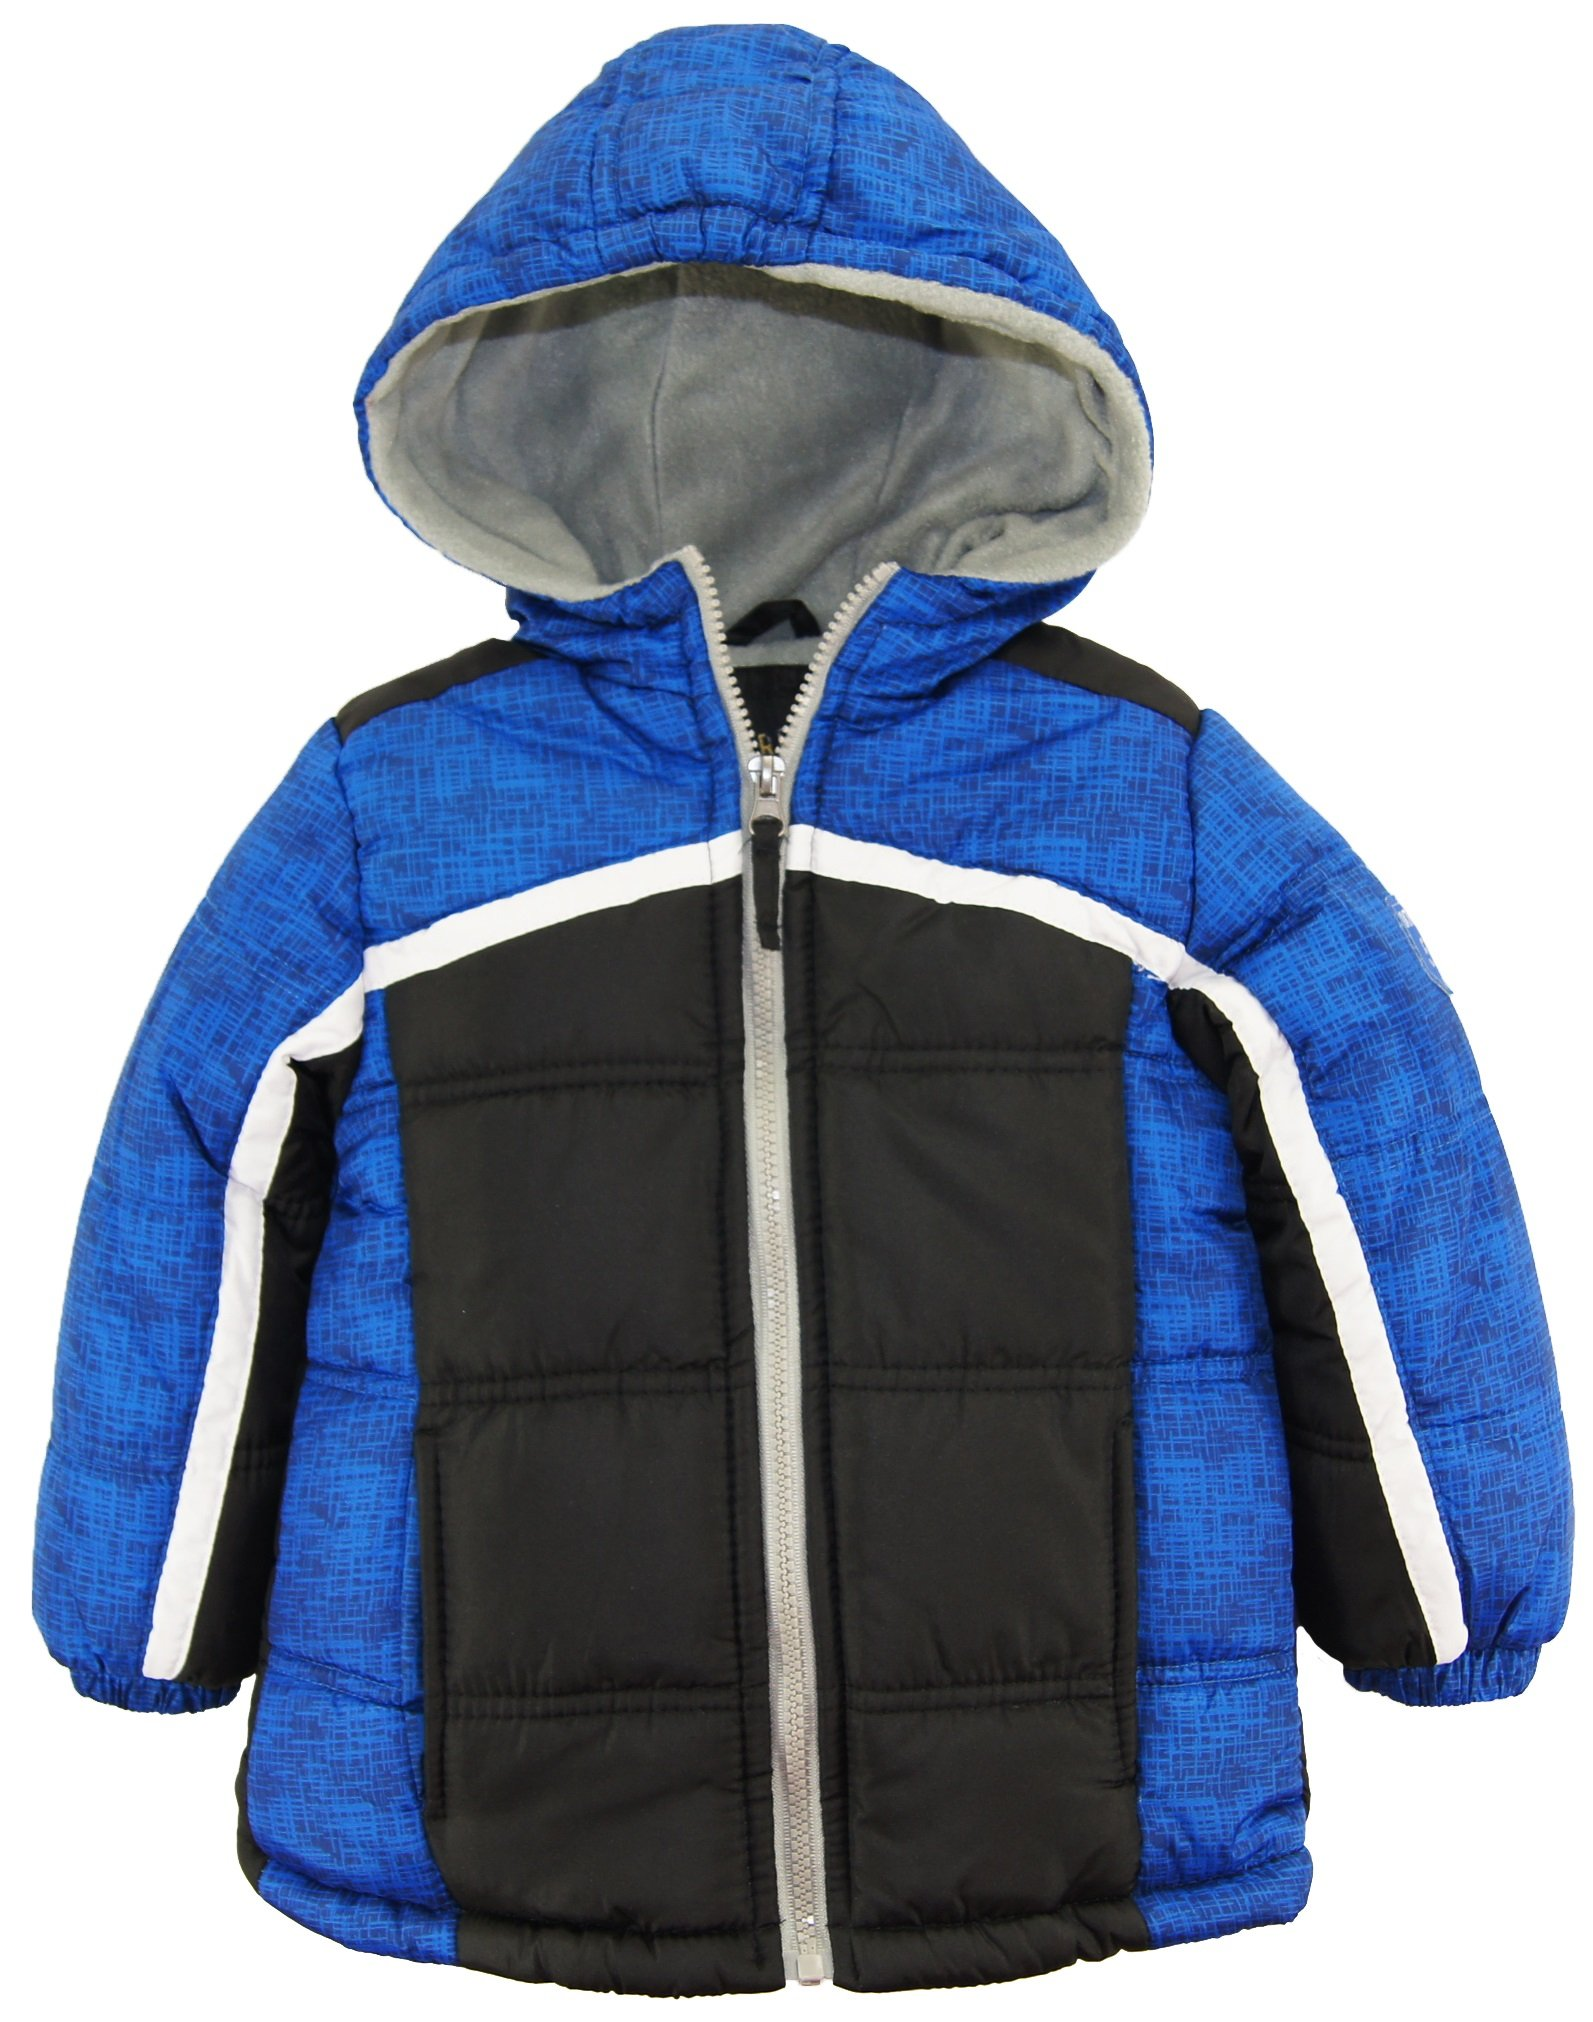 iXtreme Little Boys Expedition Colorblock Hooded Winter Puffer Jacket Coat, Black, 2T